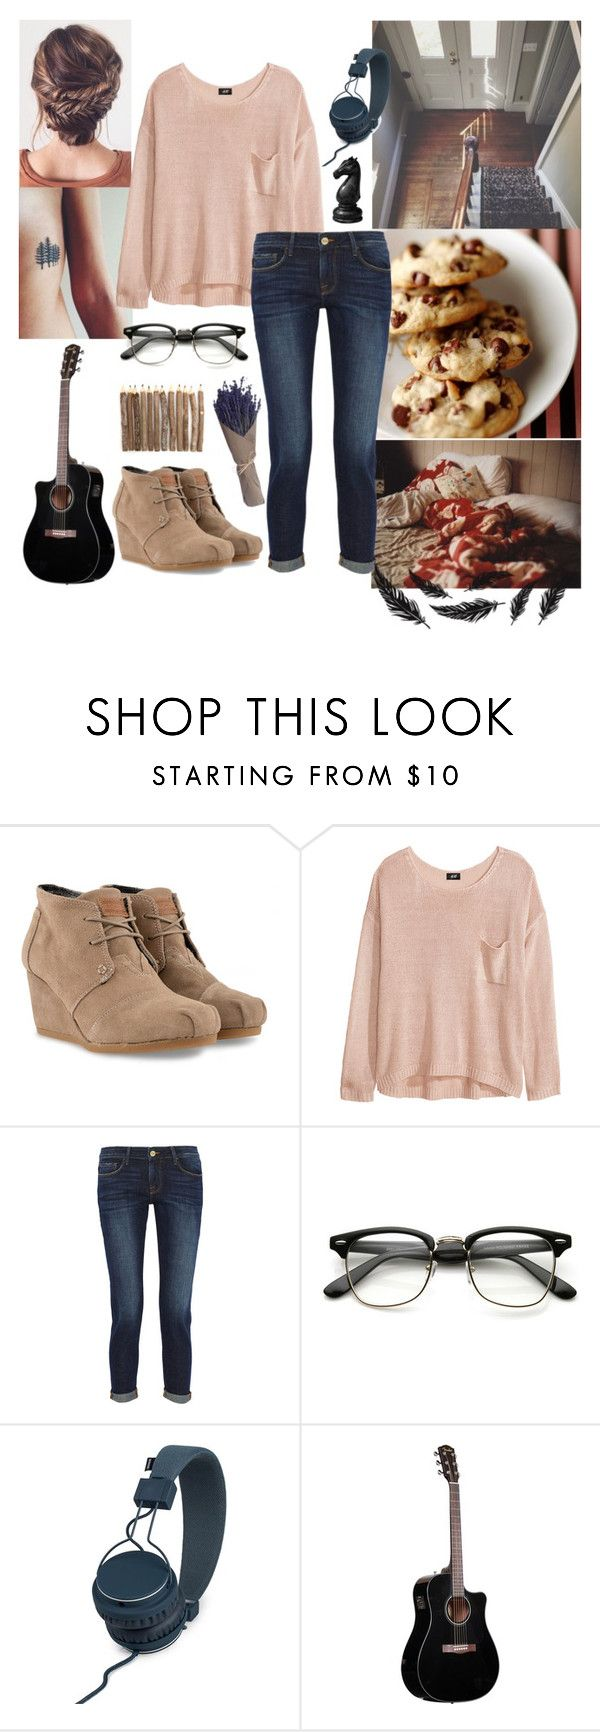 """""""What does """"home"""" mean to you?"""" by raven-shadow-creature-denoir ❤ liked on Polyvore featuring TOMS, H&M, Frame Denim, Urbanears and kitchen"""